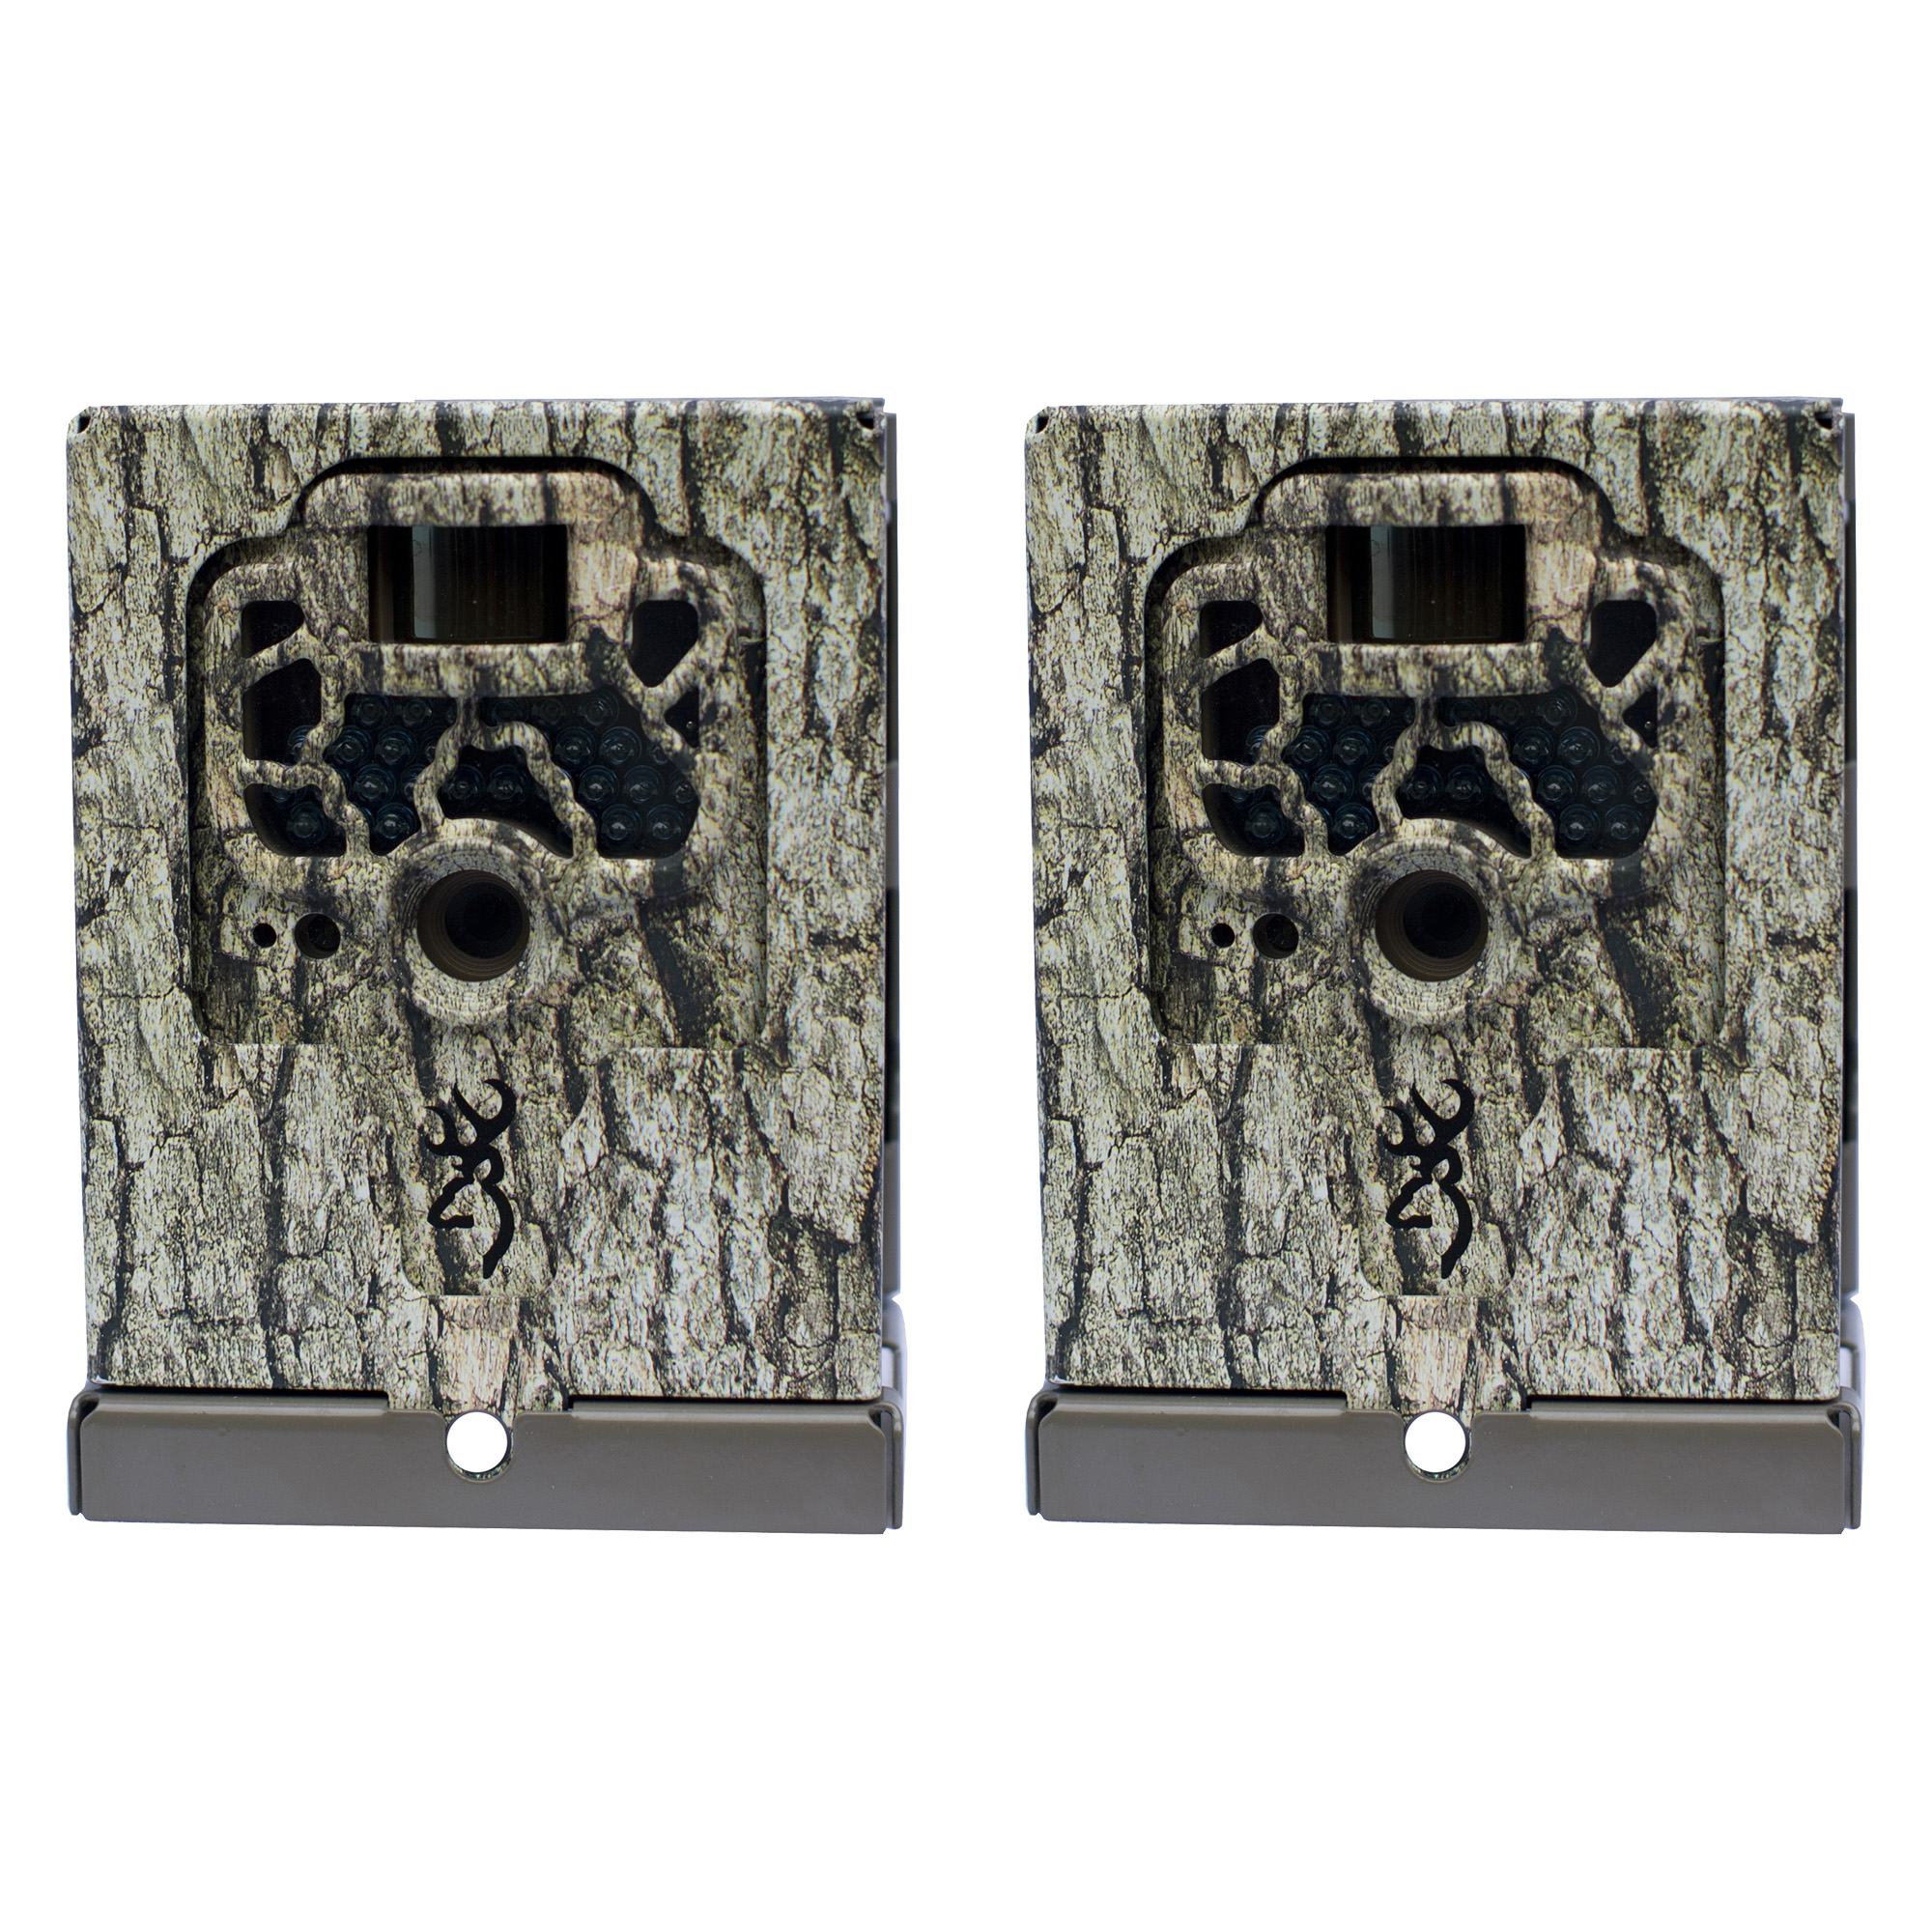 Browning Trail Cameras Locking Security Box for Game Cameras, 2 Pack | BTC-SB by Browning Trail Cameras